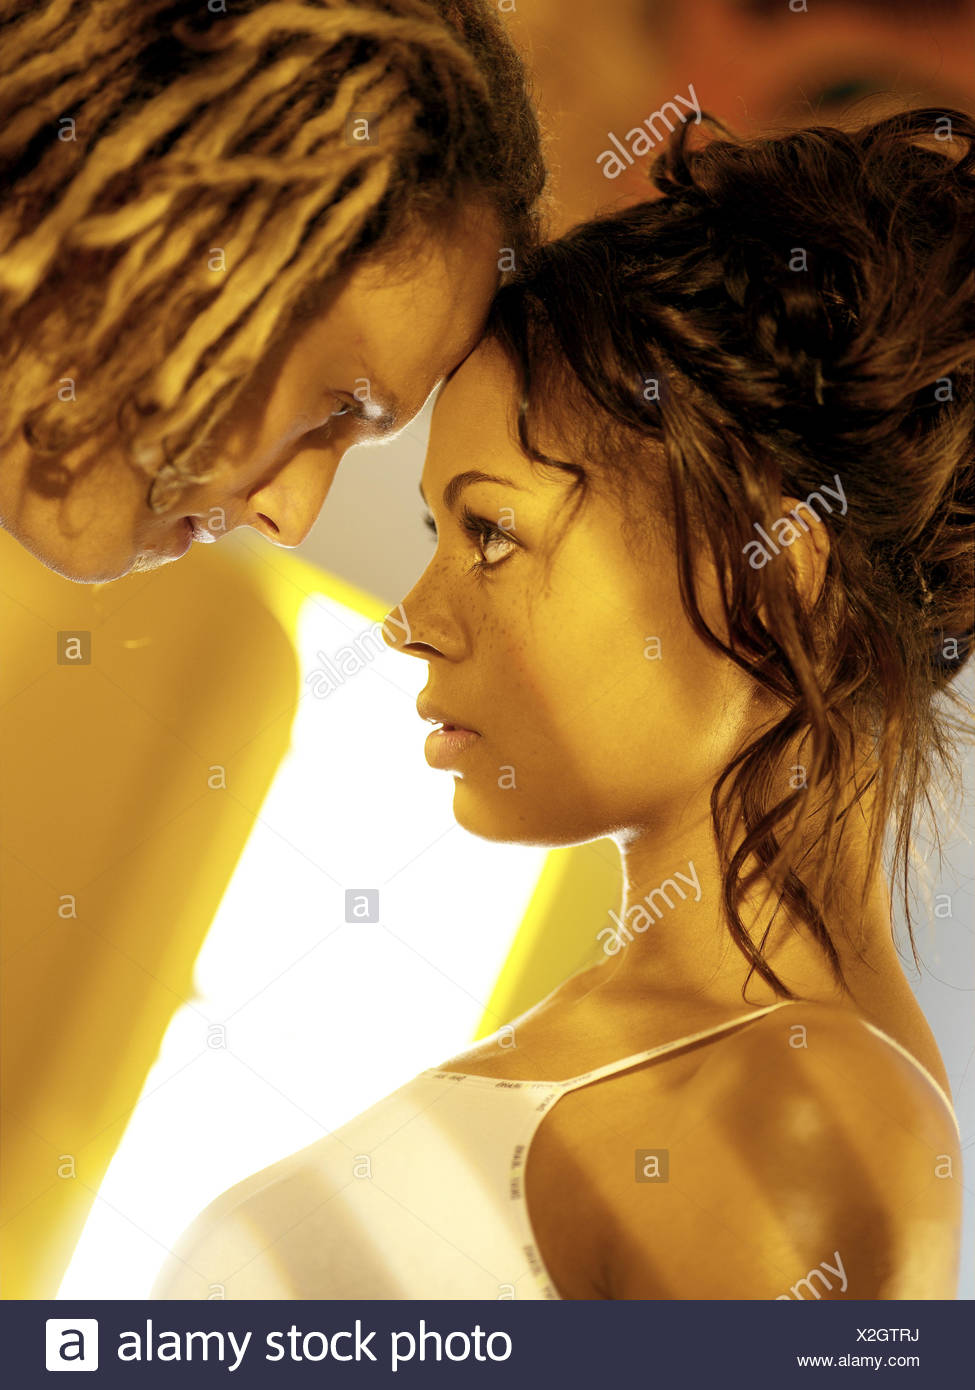 Couple, young, skin colour differently, falls in love, eye contact, page portrait at lovers, at lovers, ethnically merged, nationality different, woman swarthy, man, dreadlocks, Rasta hairstyle, love, partnership, respect, flirtation, affection, touch, suture, closely packed, look, intensely, passionately, feelings, emotion, desire, longing, desire, strength, page portrait, summery, background fridge, openly, heat, summer, inside, colour mood, colour yellow Stock Photo